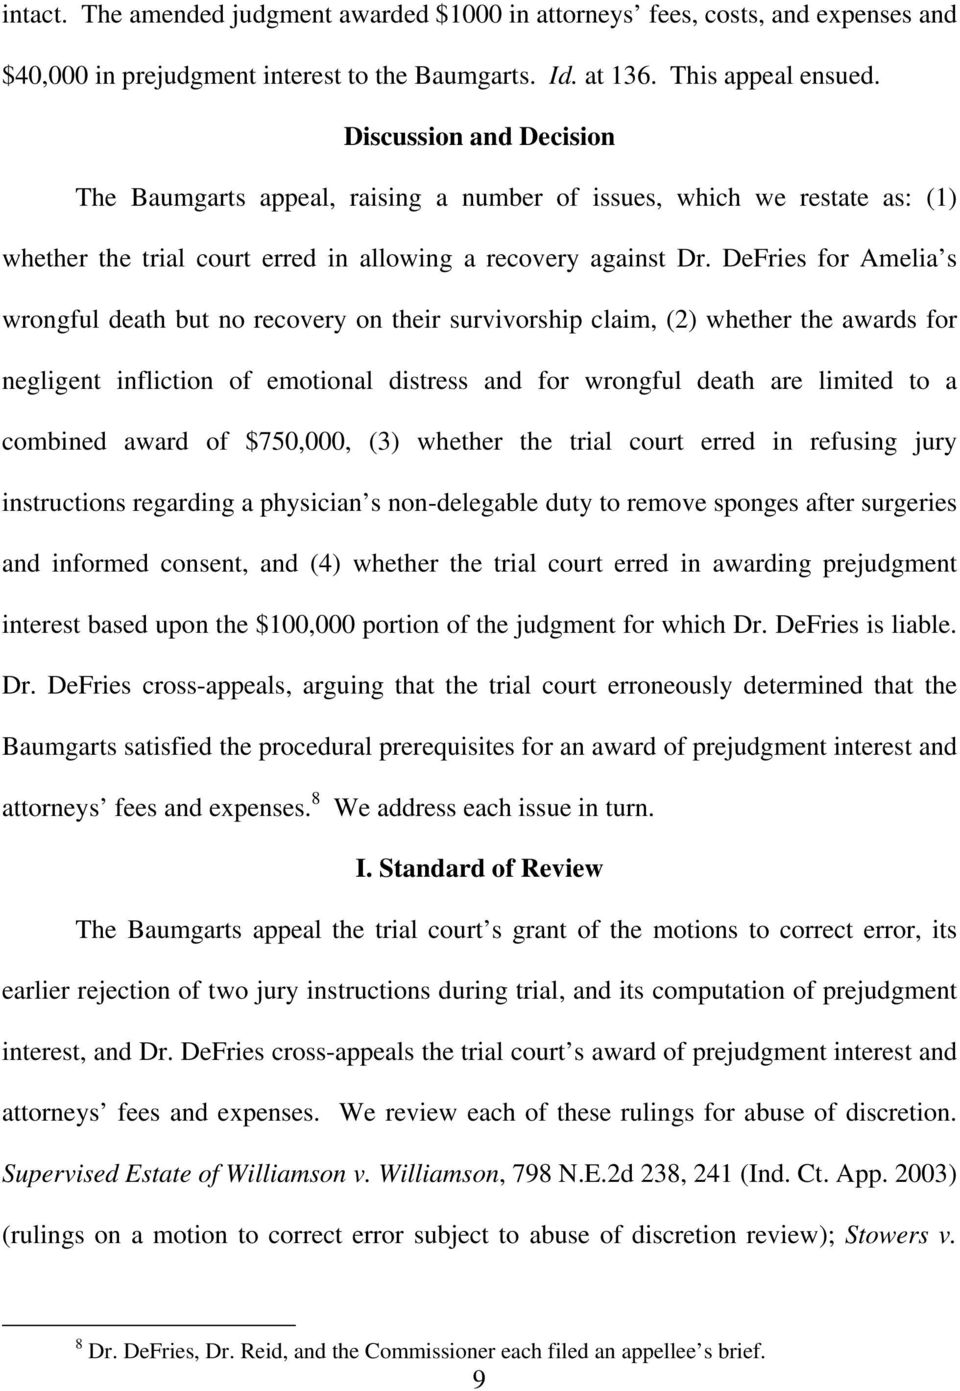 DeFries for Amelia s wrongful death but no recovery on their survivorship claim, (2) whether the awards for negligent infliction of emotional distress and for wrongful death are limited to a combined